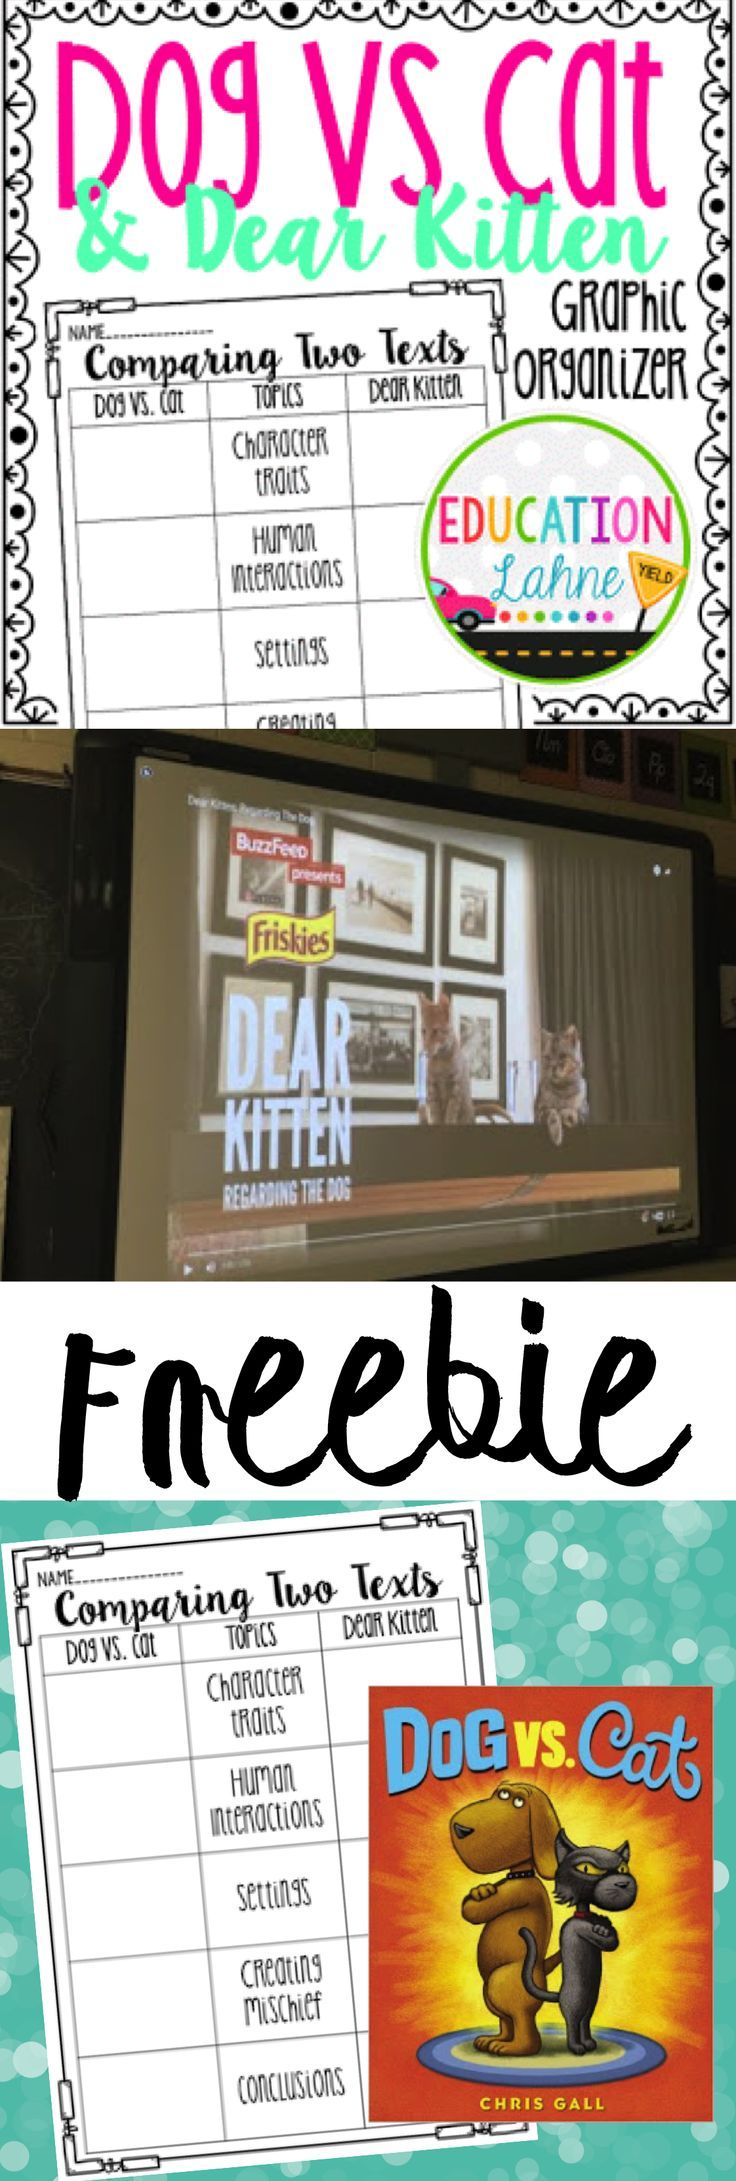 Compare two types of text in your classroom using this graphic organizer freebie! This activity incorporates on of my favorite books, Dog Vs. Cat and one of the famous Dear Kitten video clips!